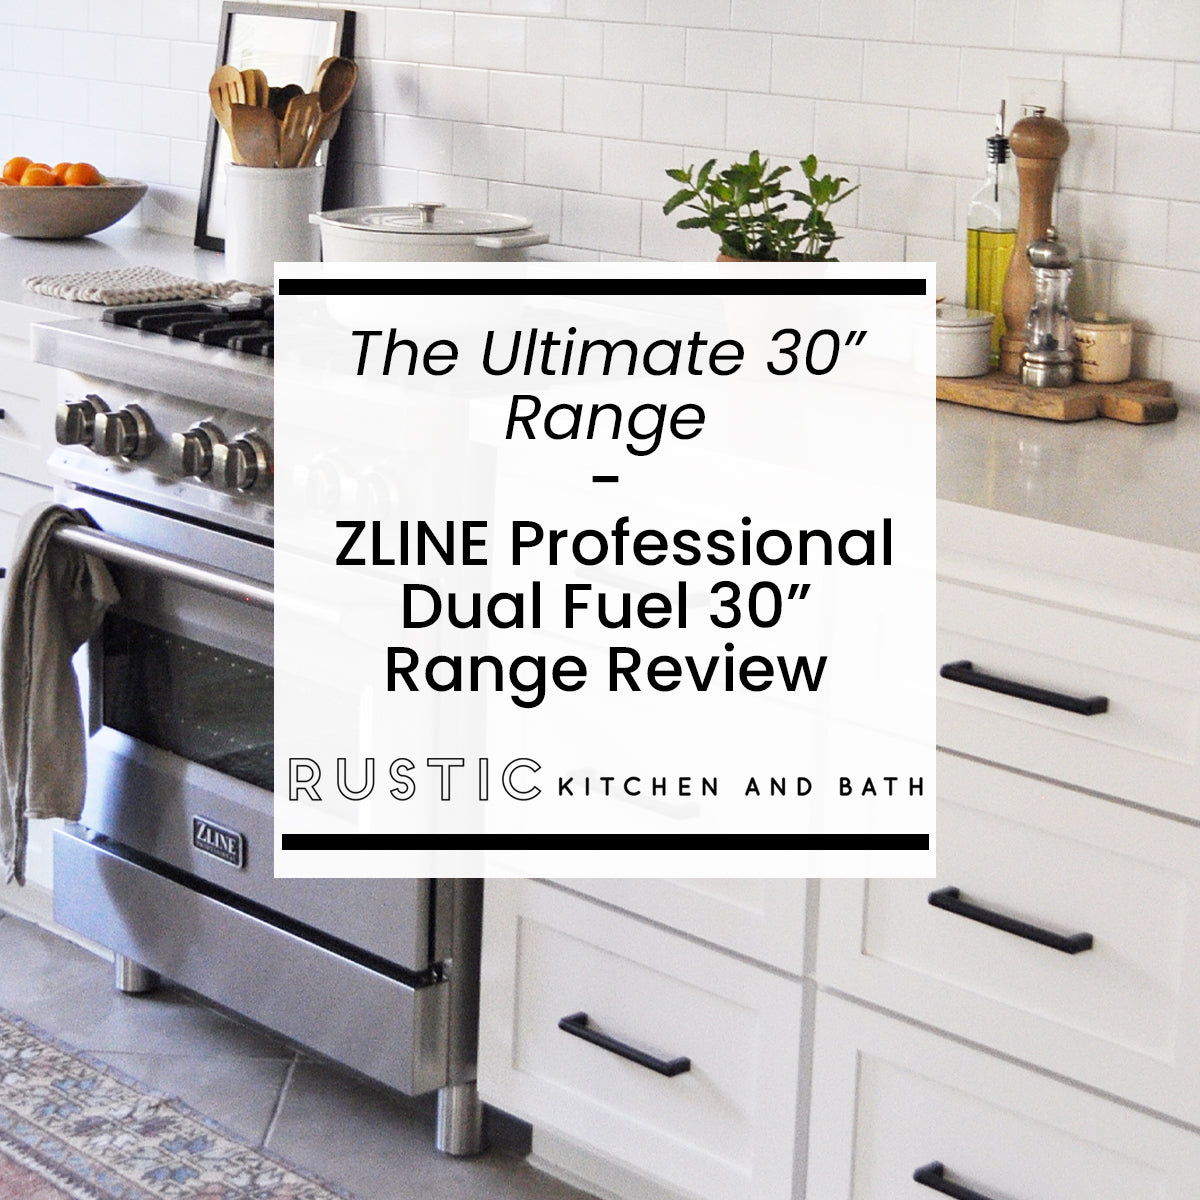 The Ultimate 30 Inch Range - ZLINE Professional Dual Fuel 30 Inch Range Review